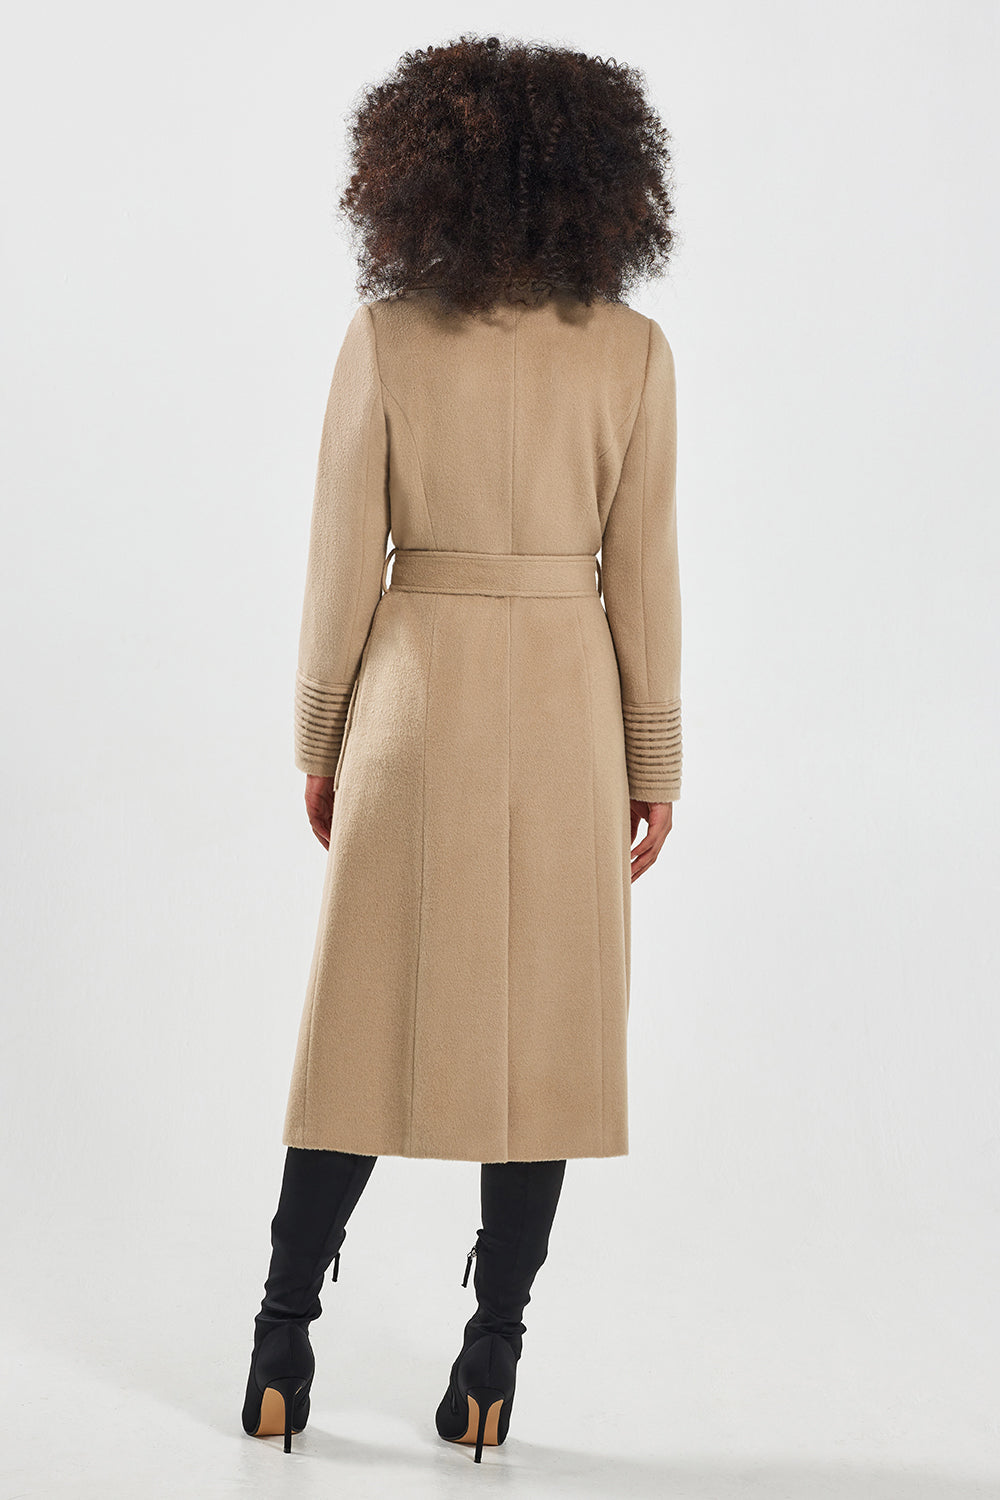 Sentaler Long Wide Collar Wrap Coat featured in Baby Alpaca and available in Camel. Seen from back.